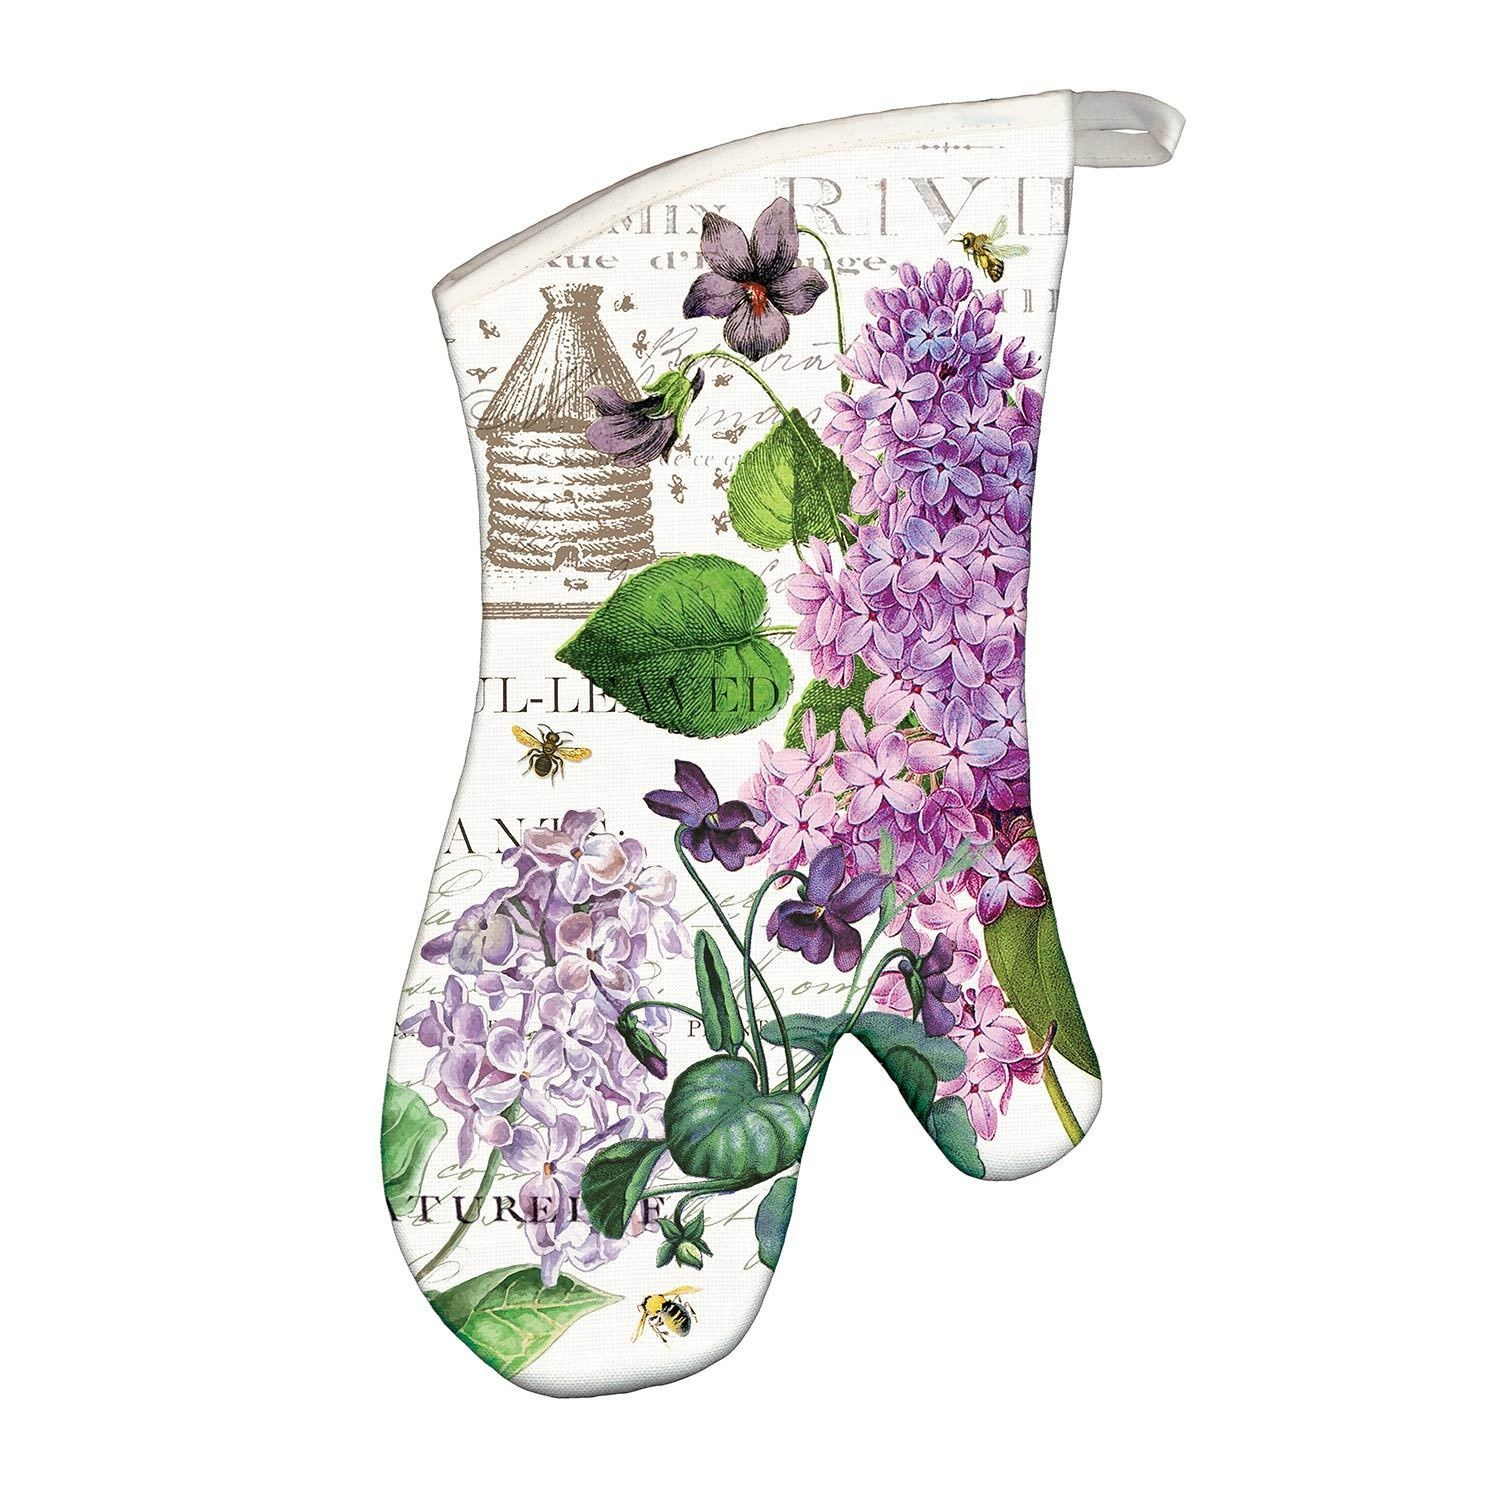 Lilac & Violets Oven Mitts